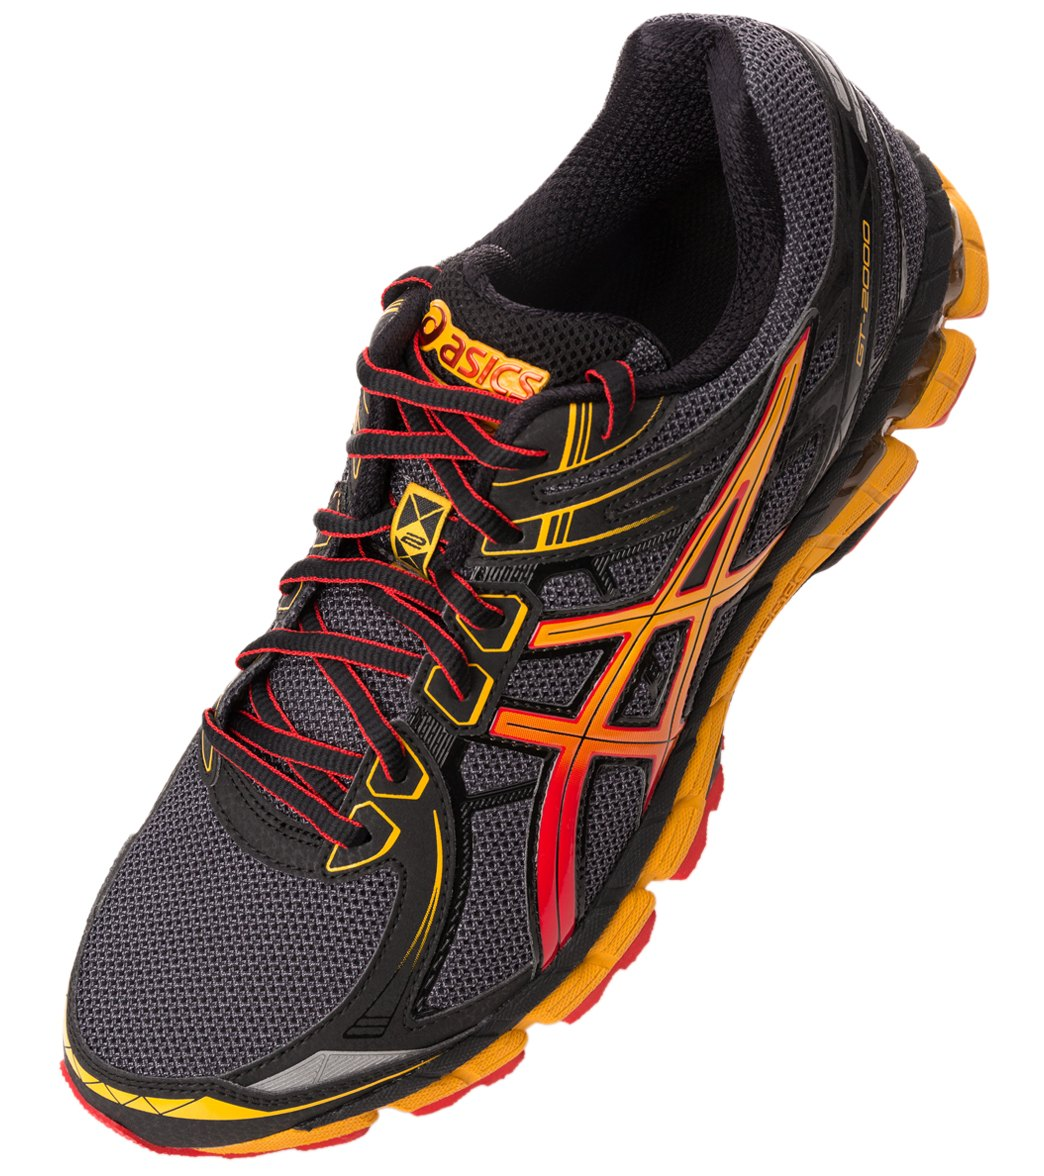 122b64a0d2f3 Asics Men s GT-2000 2 Trail Running Shoes at SwimOutlet.com - Free Shipping